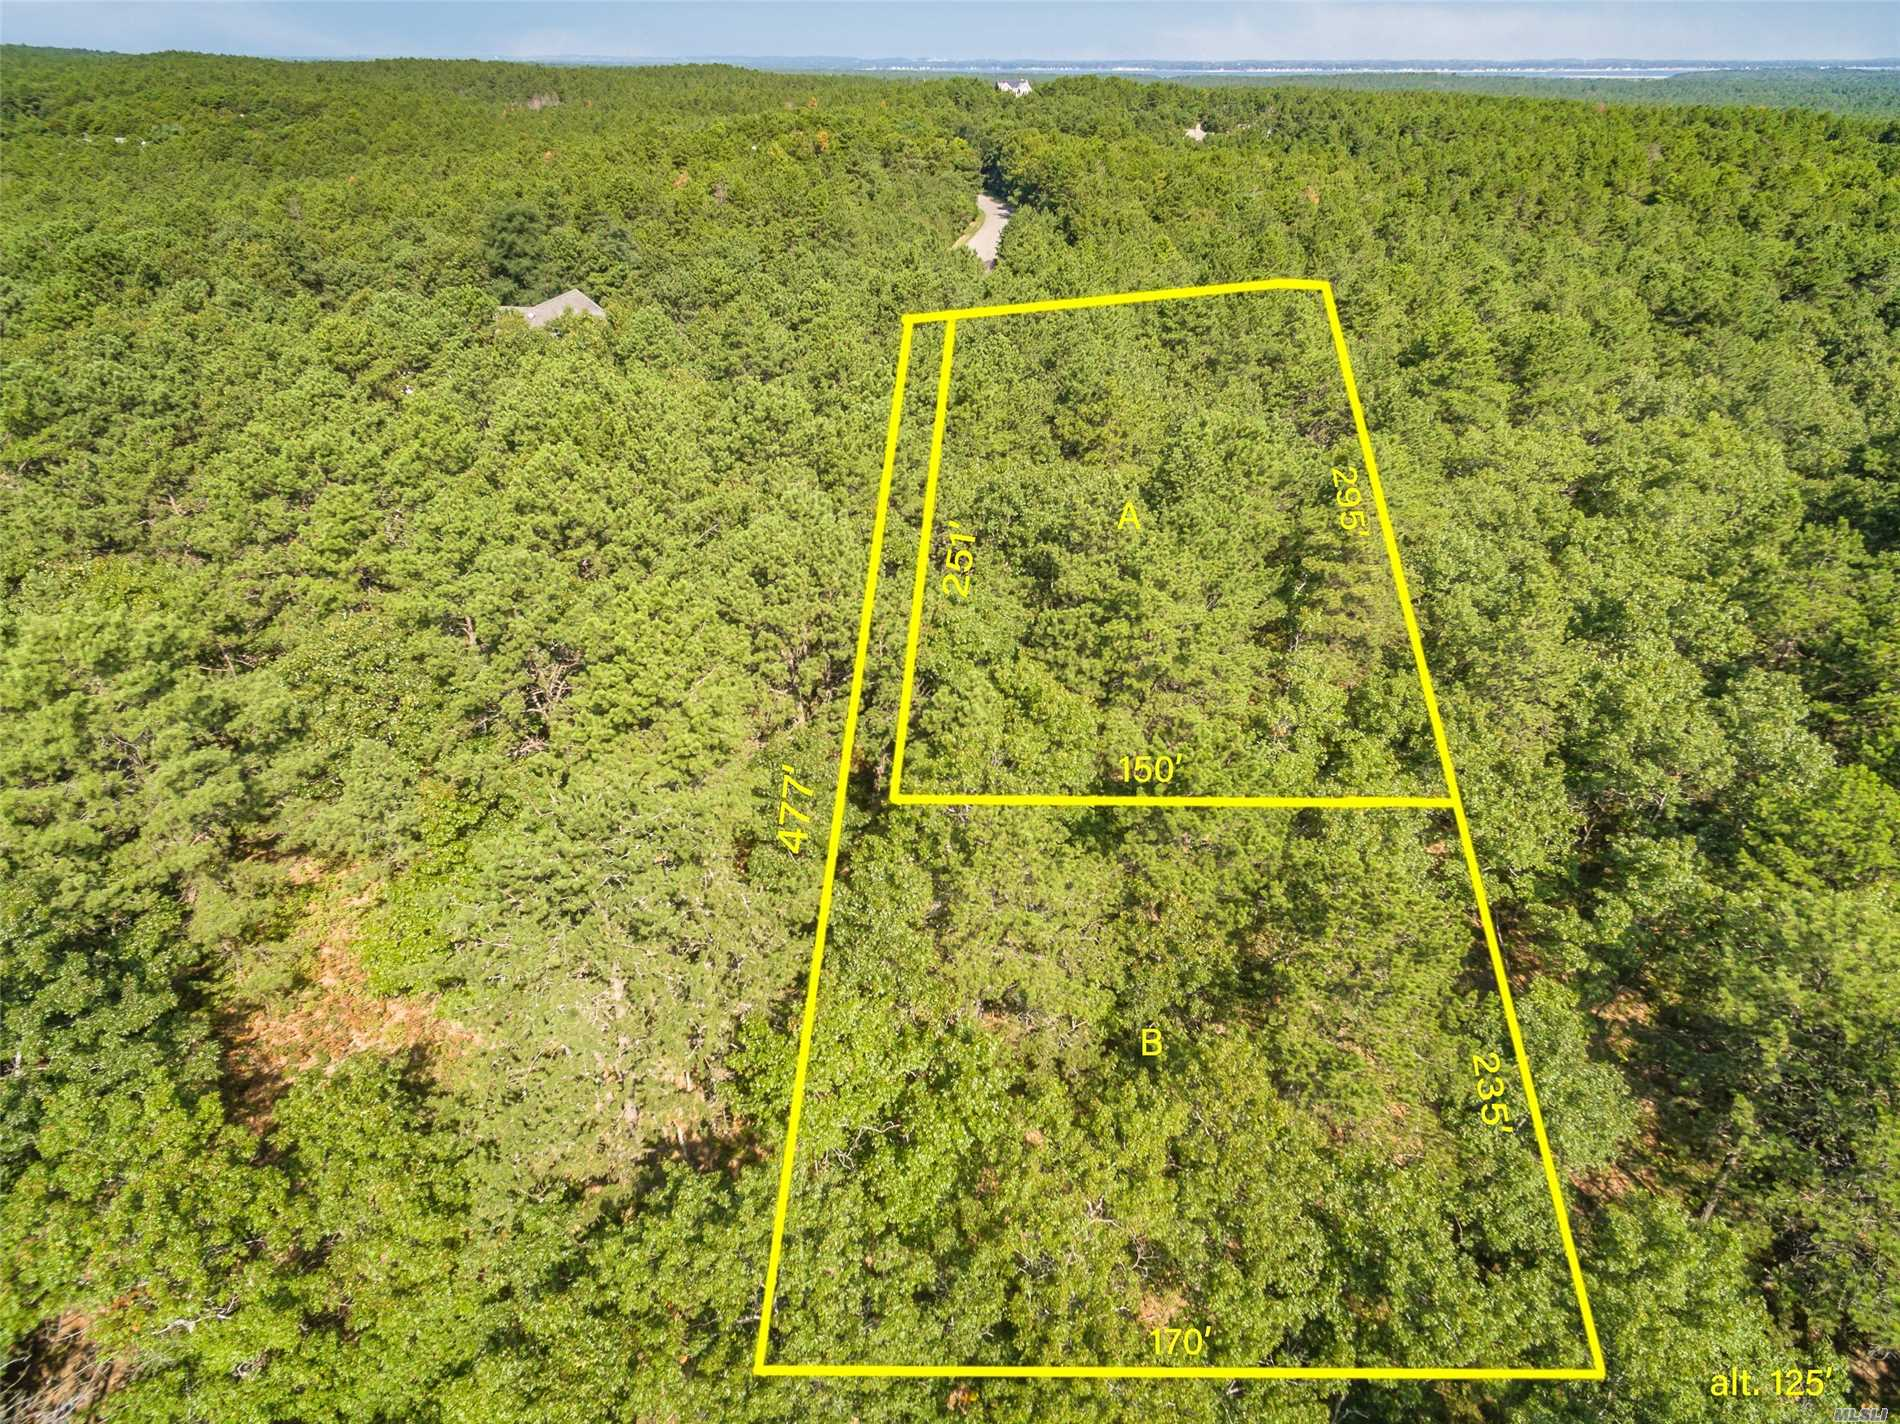 The Southampton Pines Subdivision. Surrounded By Preserved Land, This 1 Acre Lot Is Situated On One Of The Highest Points On Long Island, Boasting One Of The Highest Elevations In The Development. Plenty Of Room For Pool. Possibility To Expand The Property By Purchasing The Adjacent Parcel. This Is A Perfect Opportunity To Build Your Dream Home And/Or Expansion For A Family Compound.